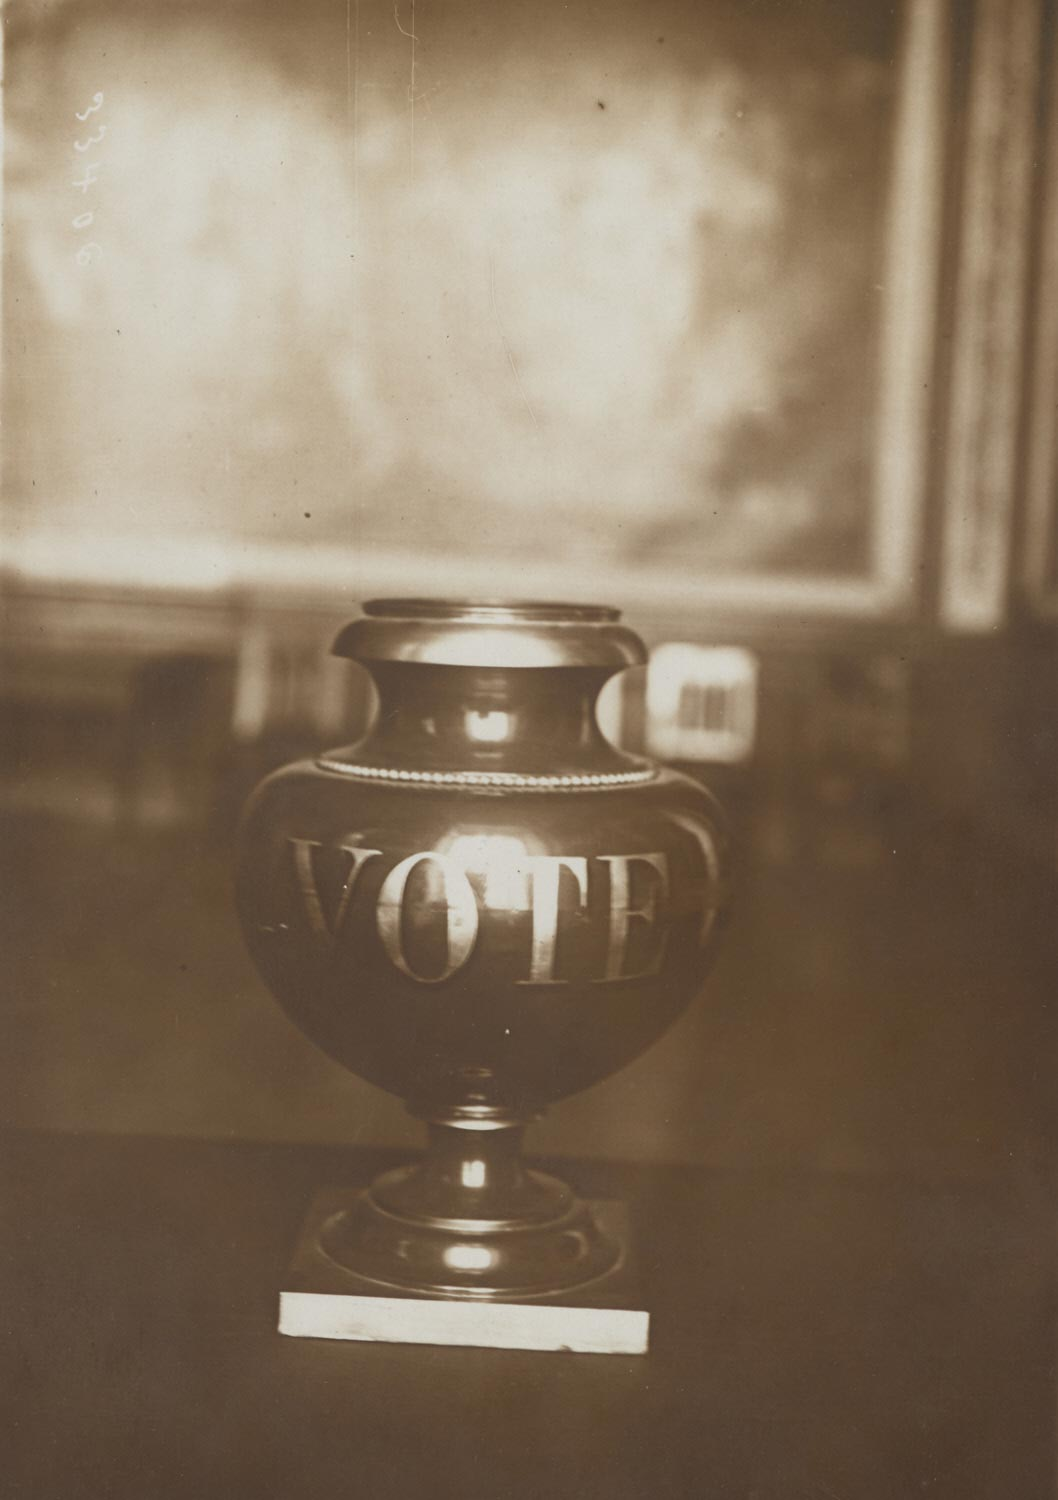 Before the Congress of Versailles: The Ballot-Urn from Which Will Emerge the Name of the Future President